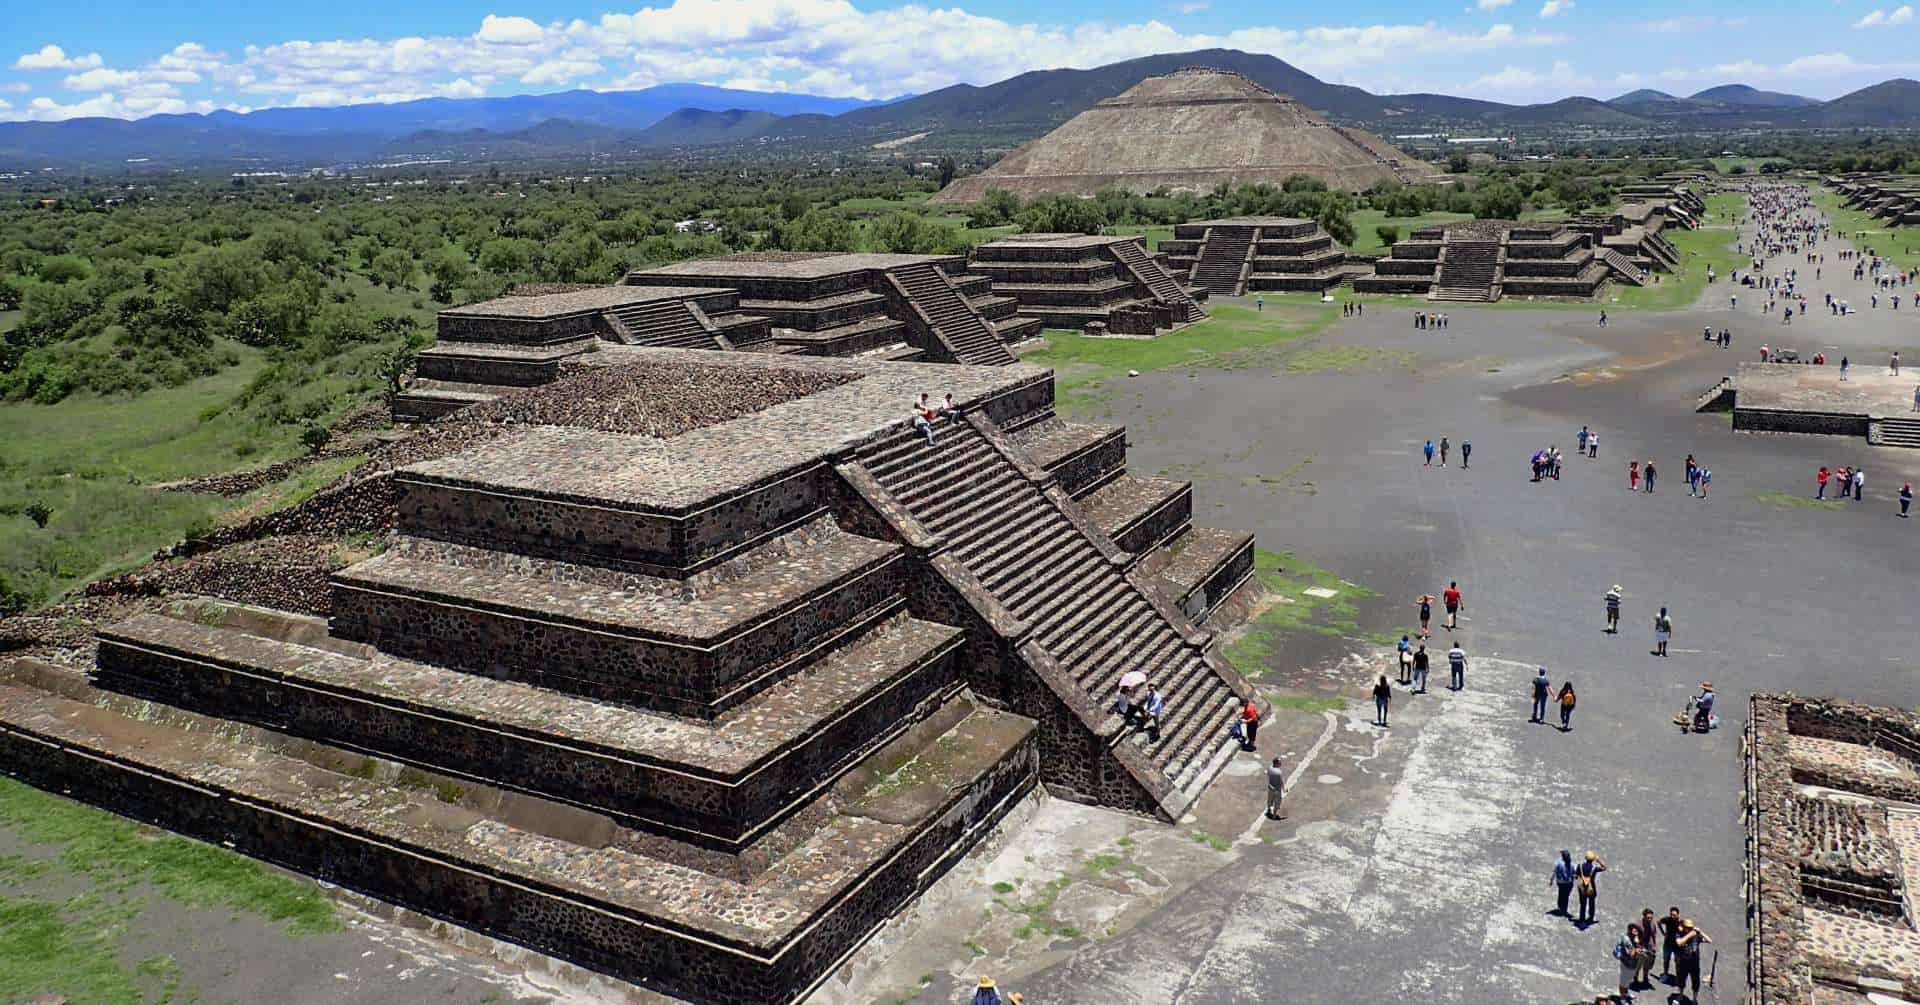 Teotihuacan World Map.How To Get To Teotihuacan From Mexico City The Whole World Or Nothing